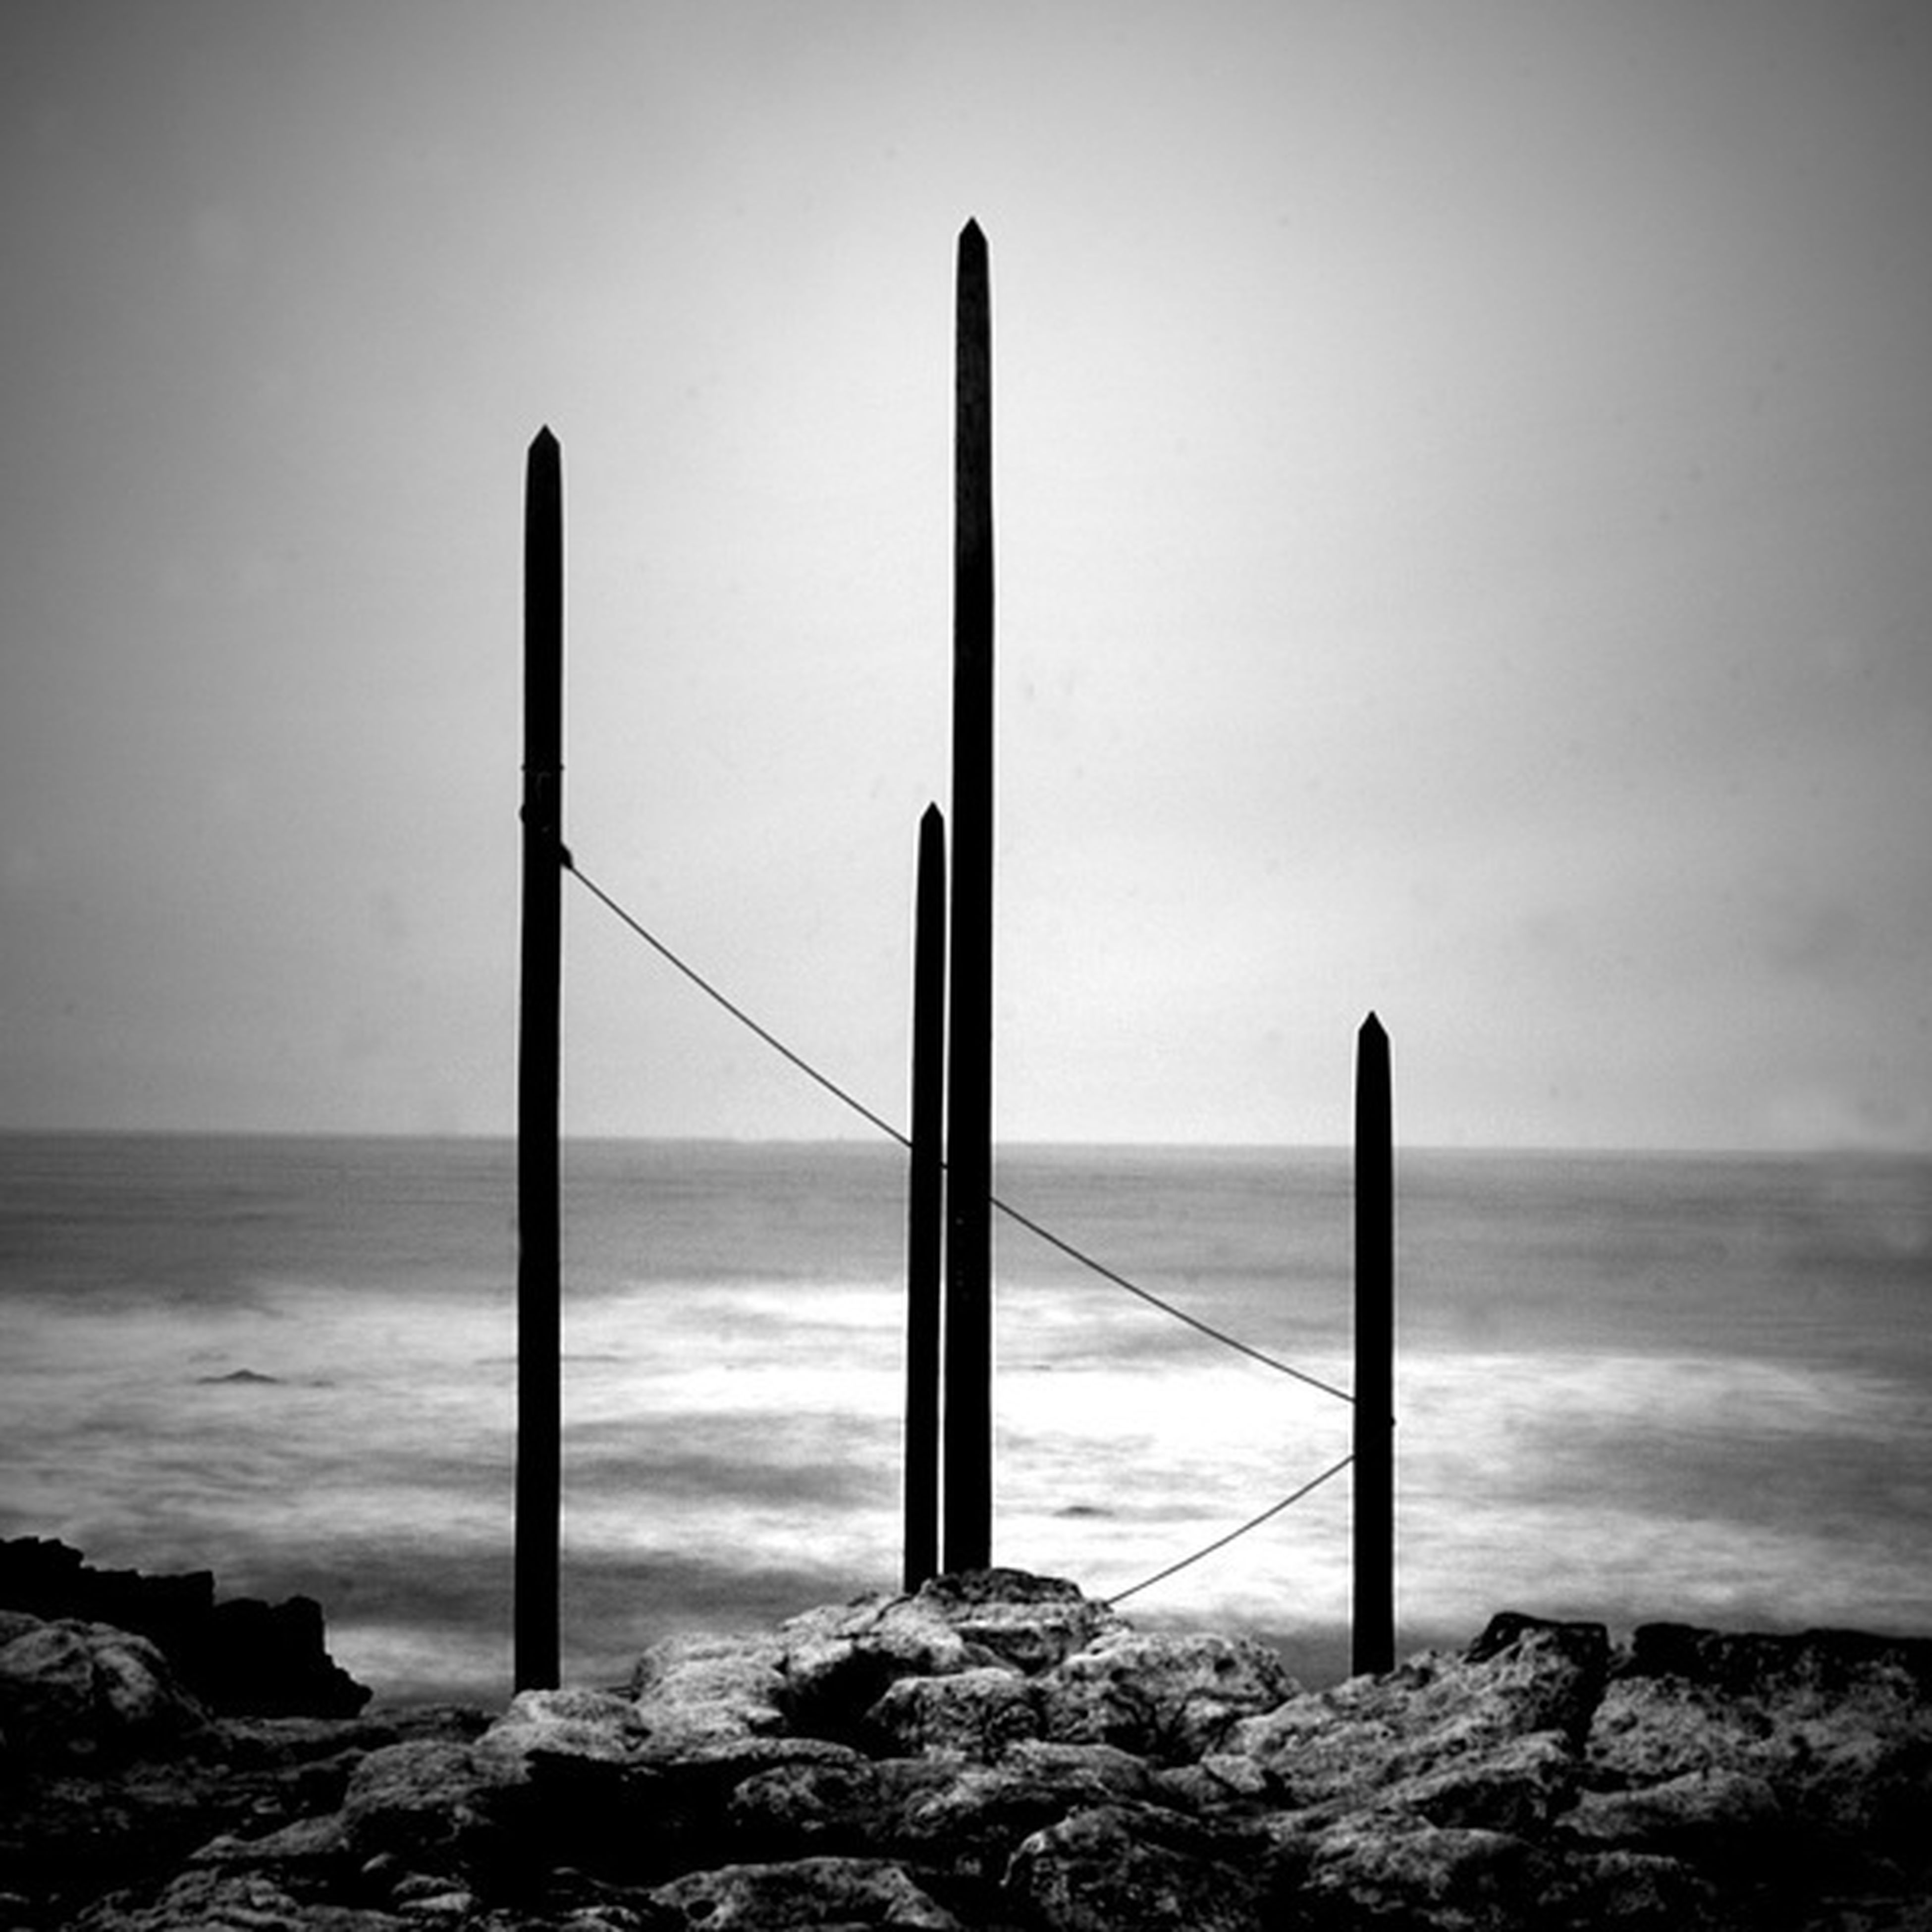 sea, horizon over water, water, beach, sky, shore, clear sky, tranquility, tranquil scene, scenics, nature, rock - object, pole, beauty in nature, wave, no people, day, outdoors, idyllic, wooden post